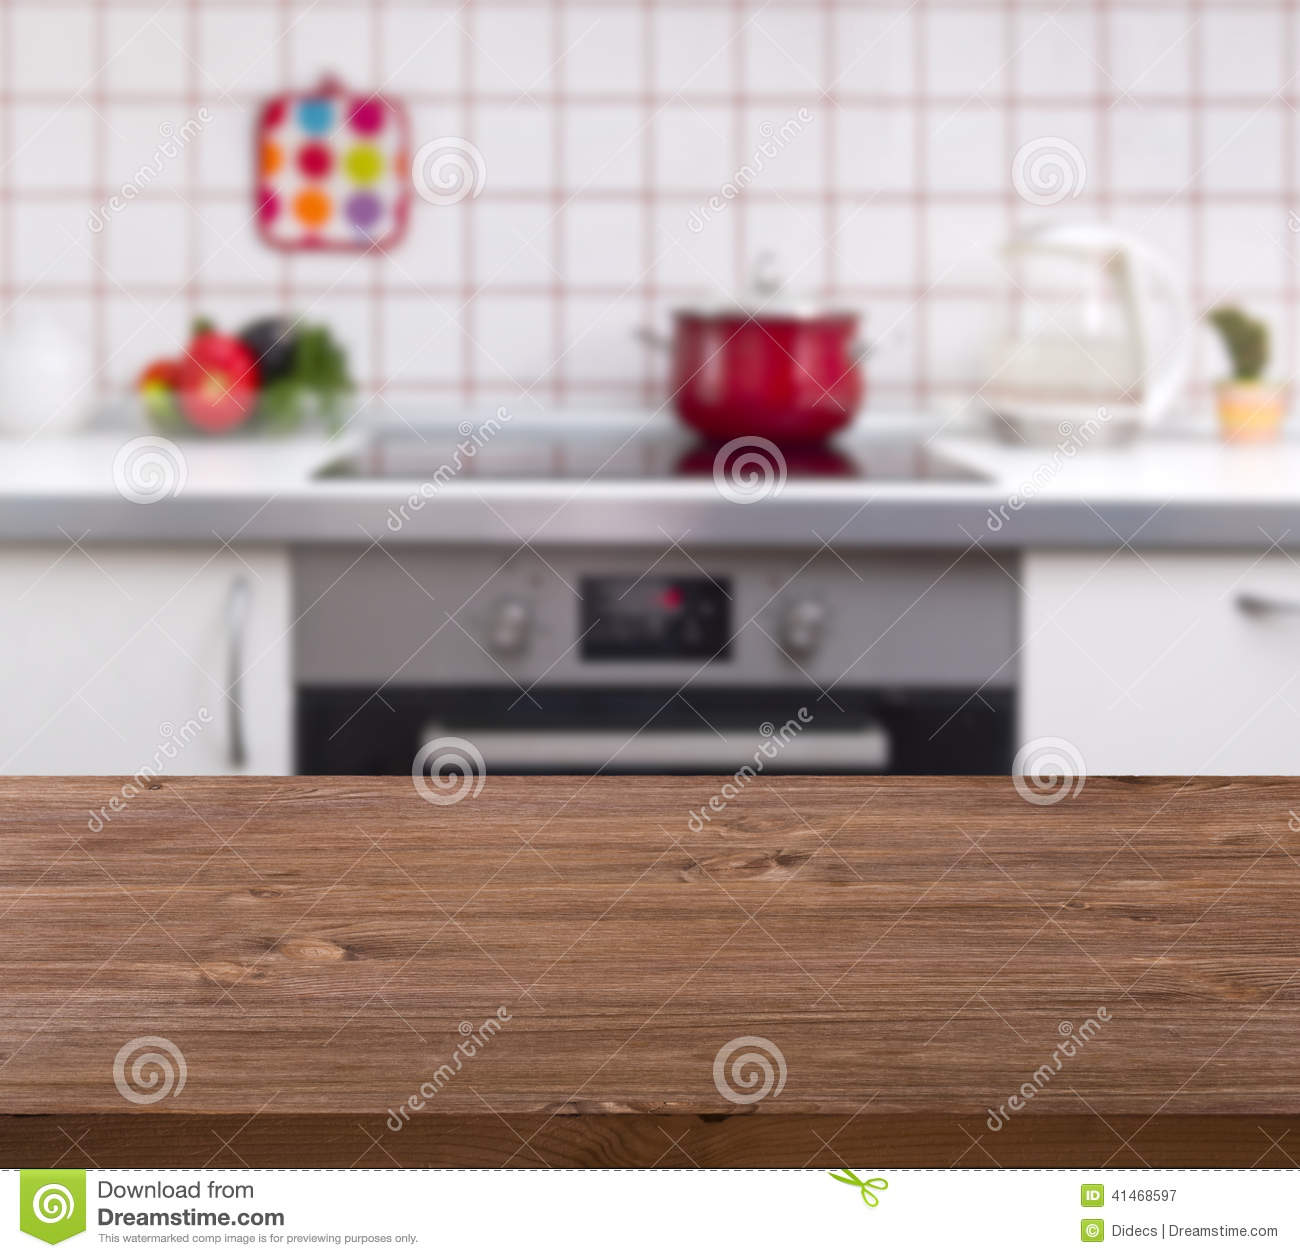 Rustic Fall Desktop Wallpaper Wooden Table On Kitchen Bench Background Stock Image